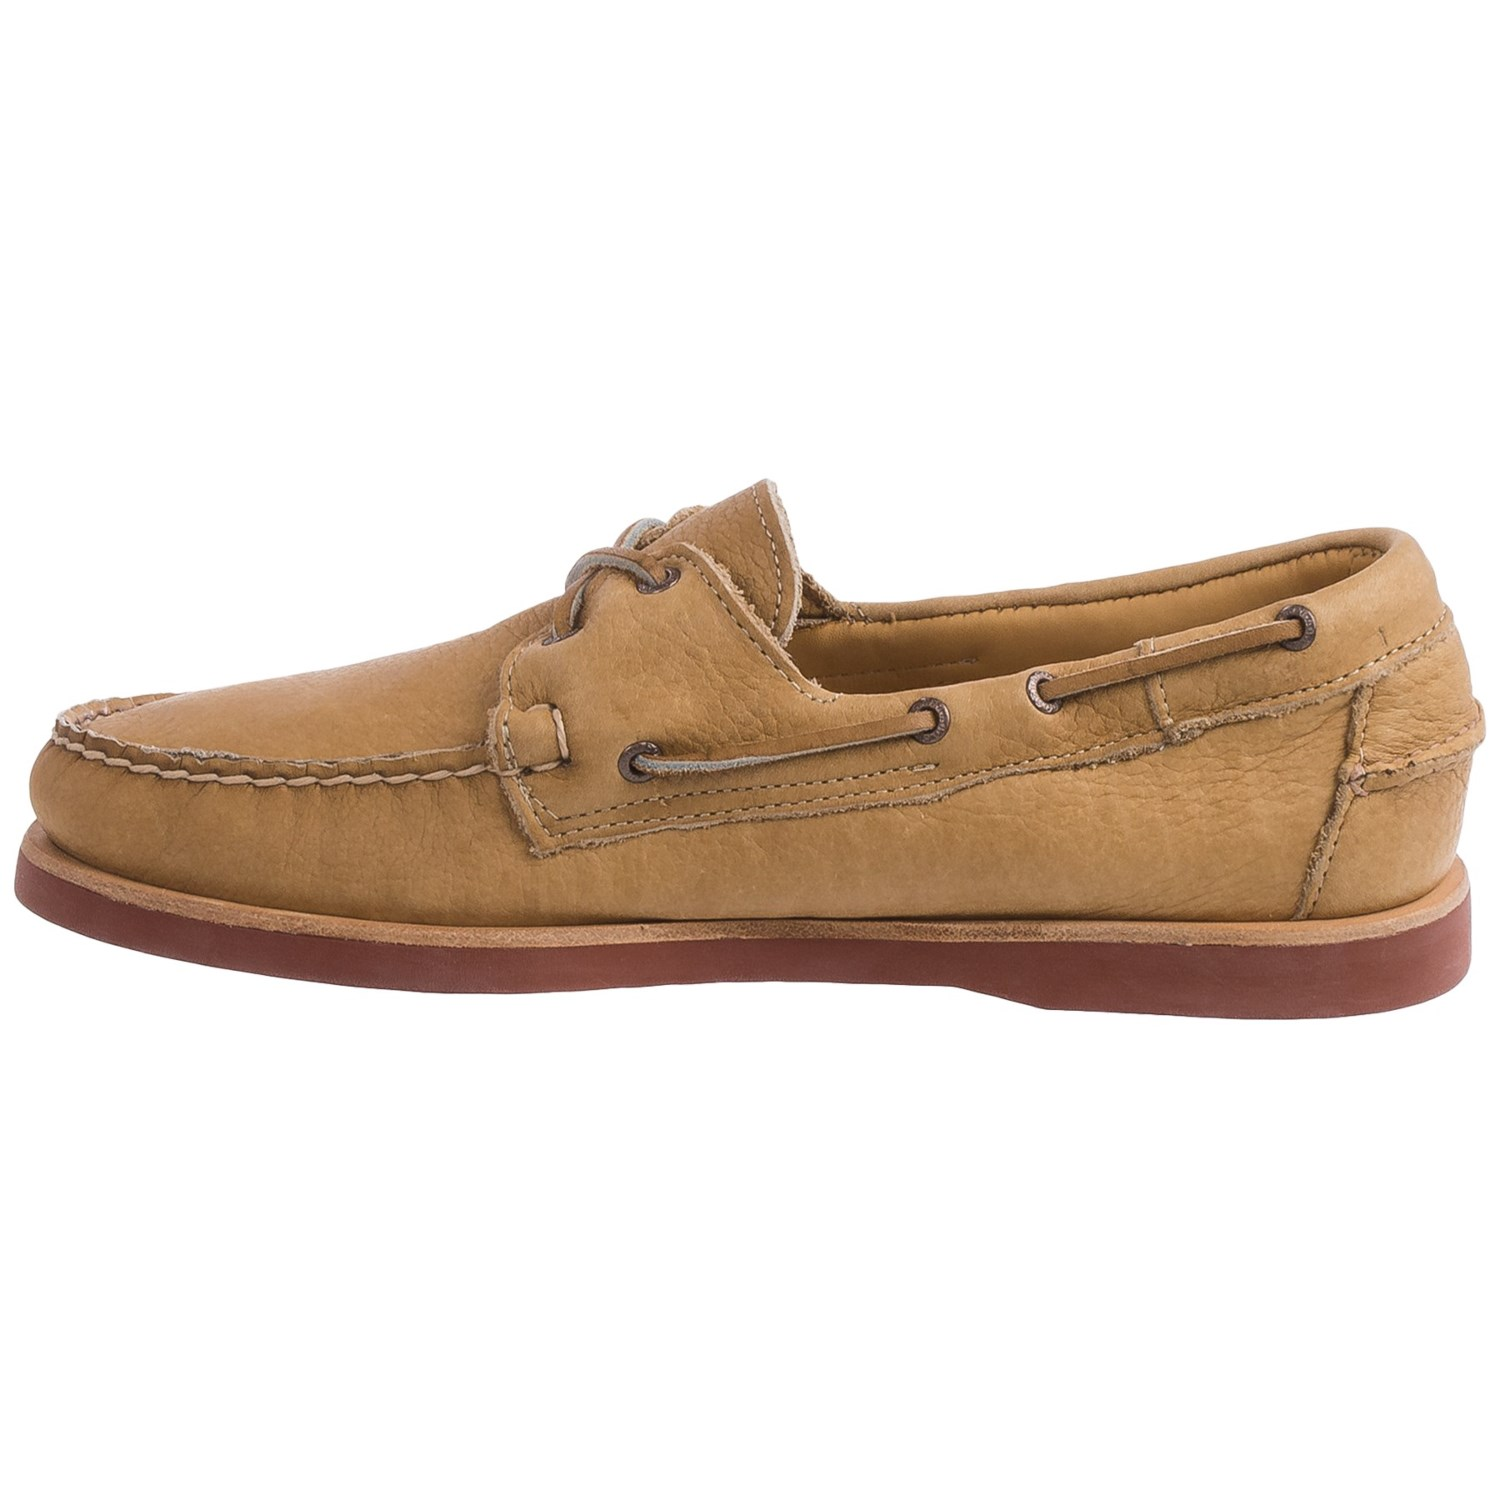 Bison Leather Oxford Shoes